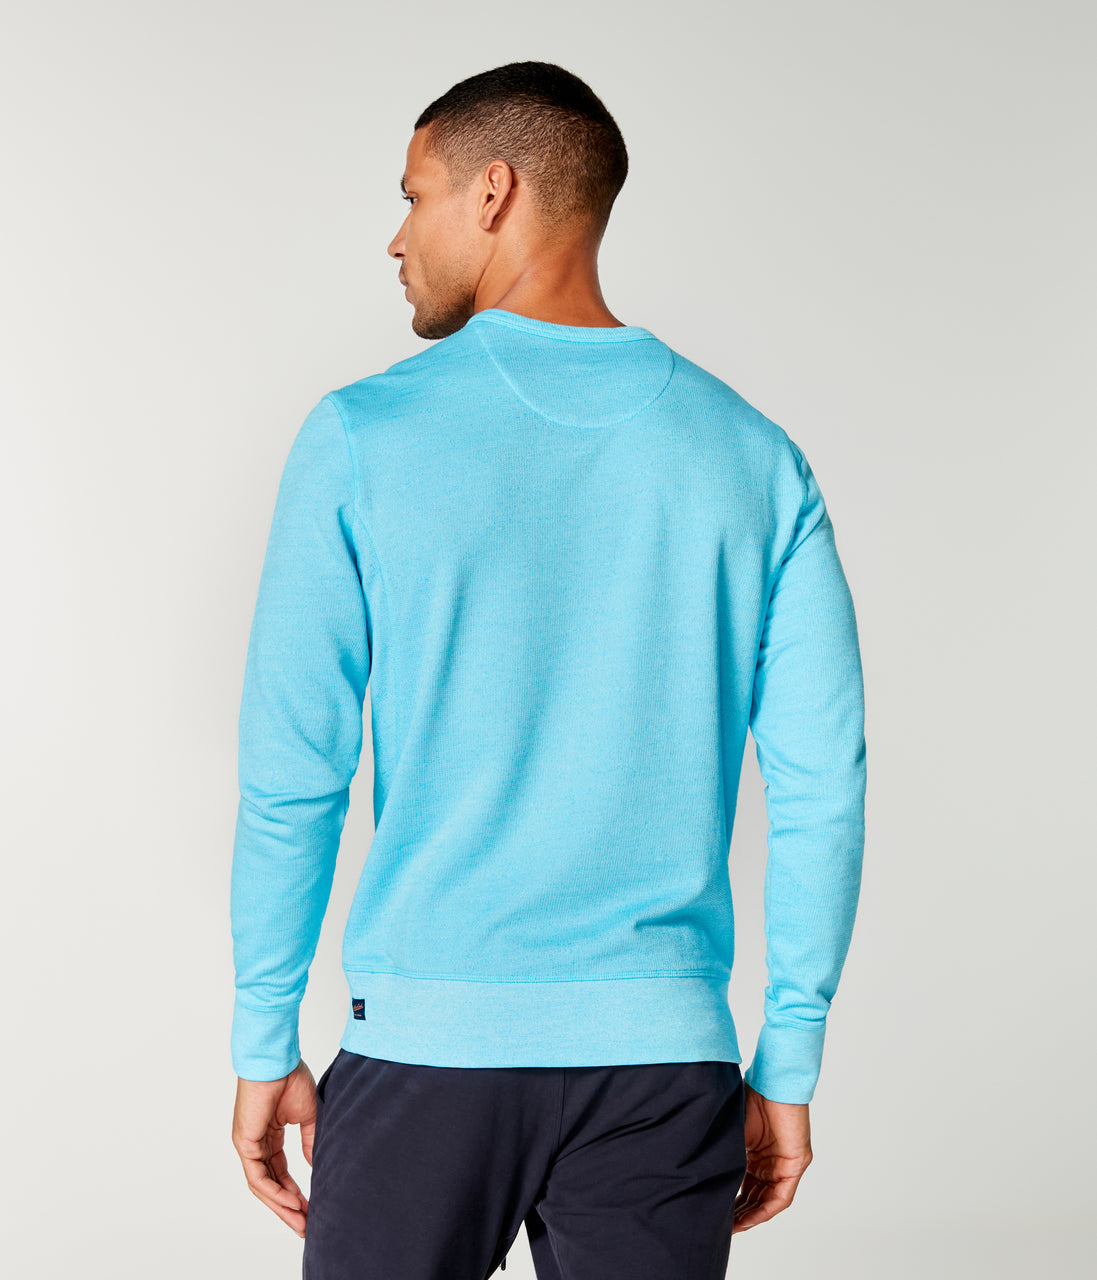 Victory V-Notch Sweatshirt - Turq - Good Man Brand - Victory V-Notch Sweatshirt - Turq